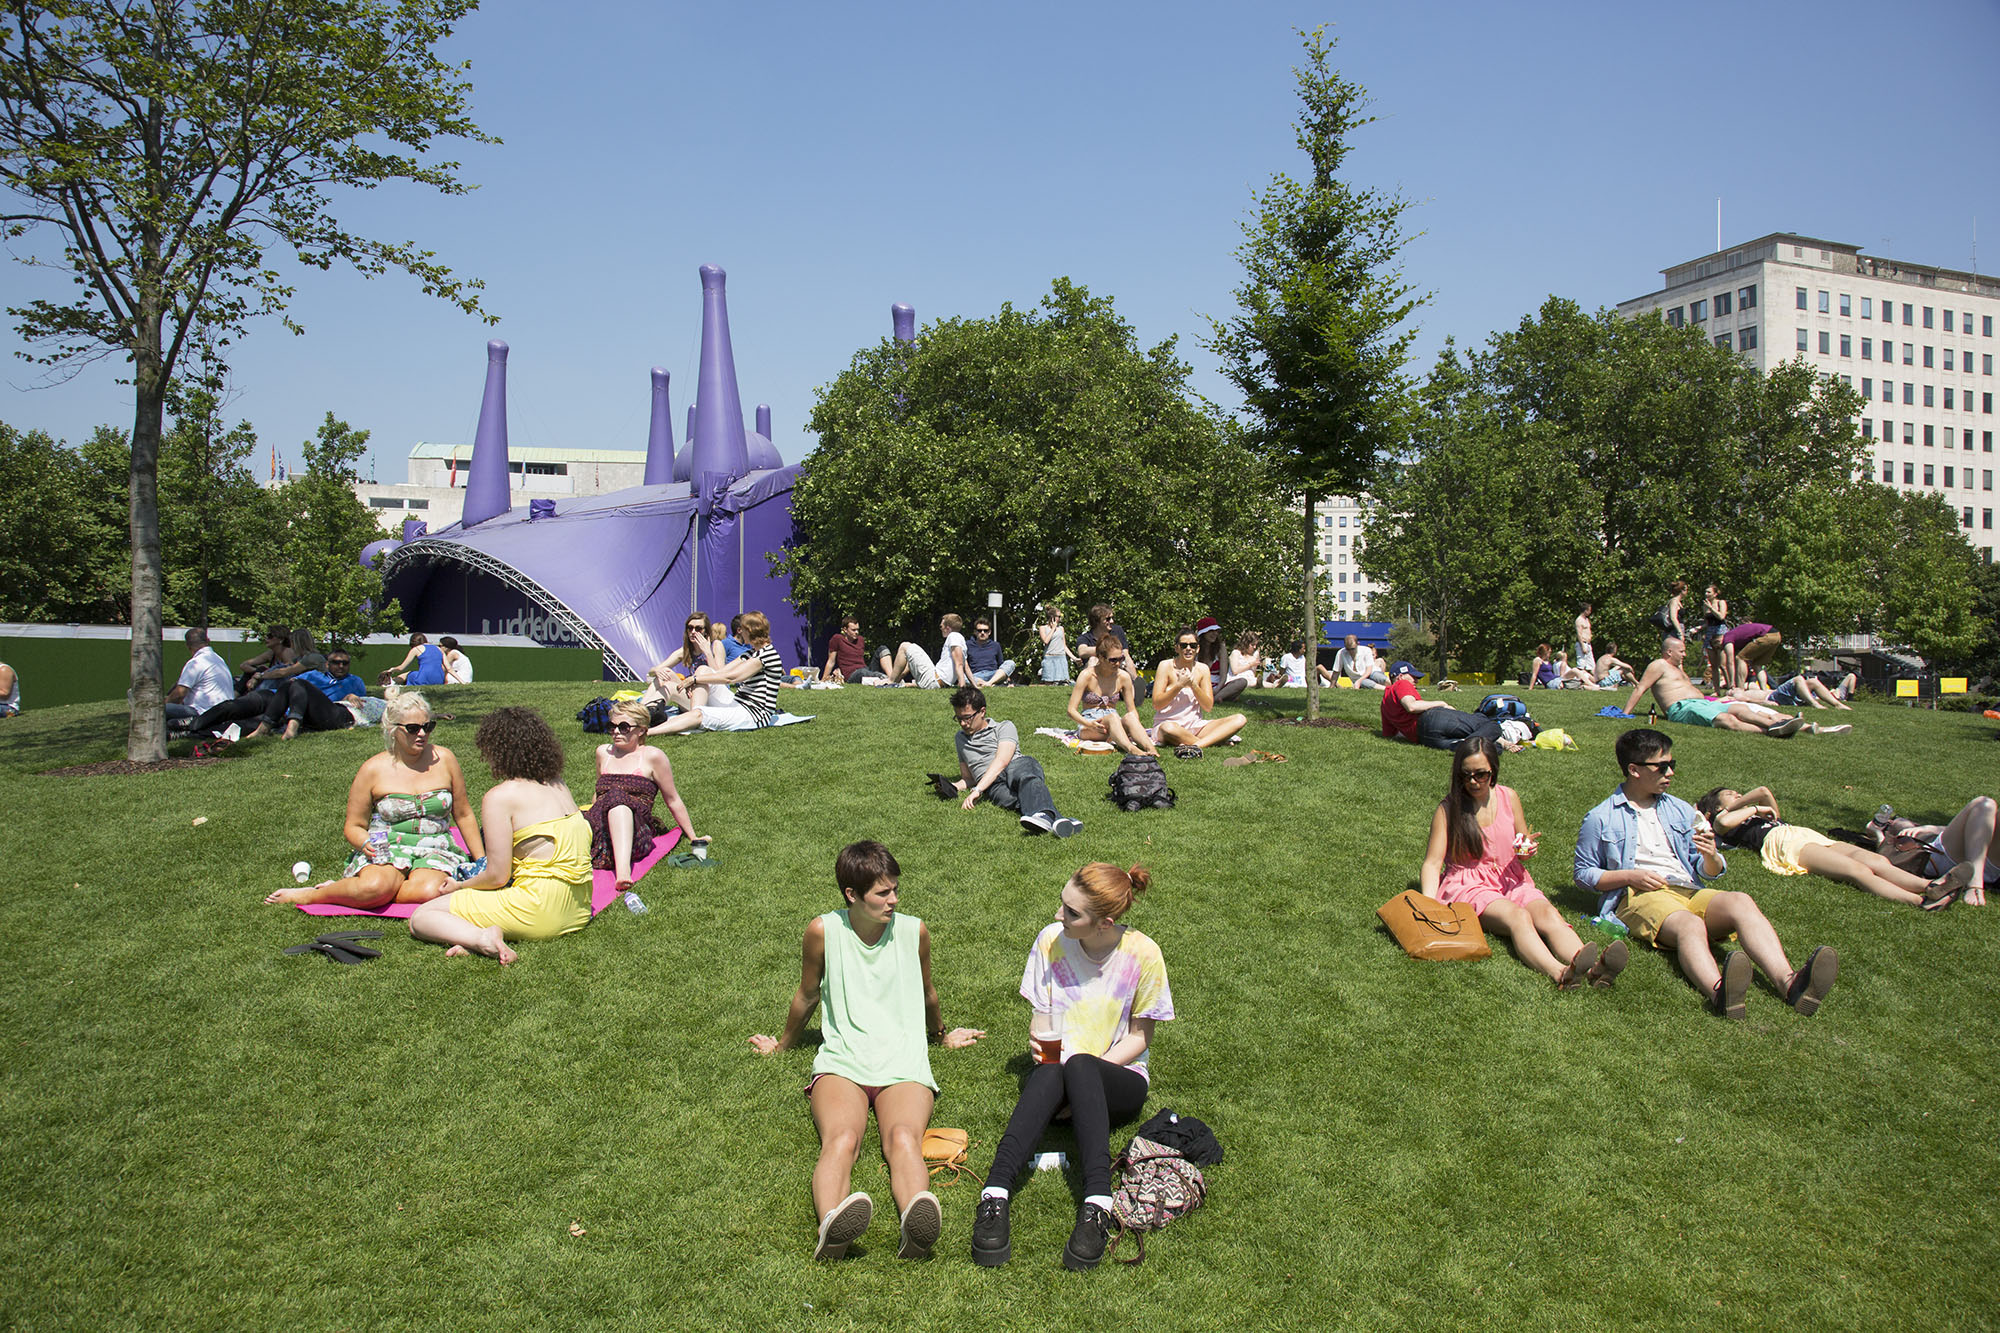 People gather on the grass in the sunshine at Jubillee Gardens on the South Bank.